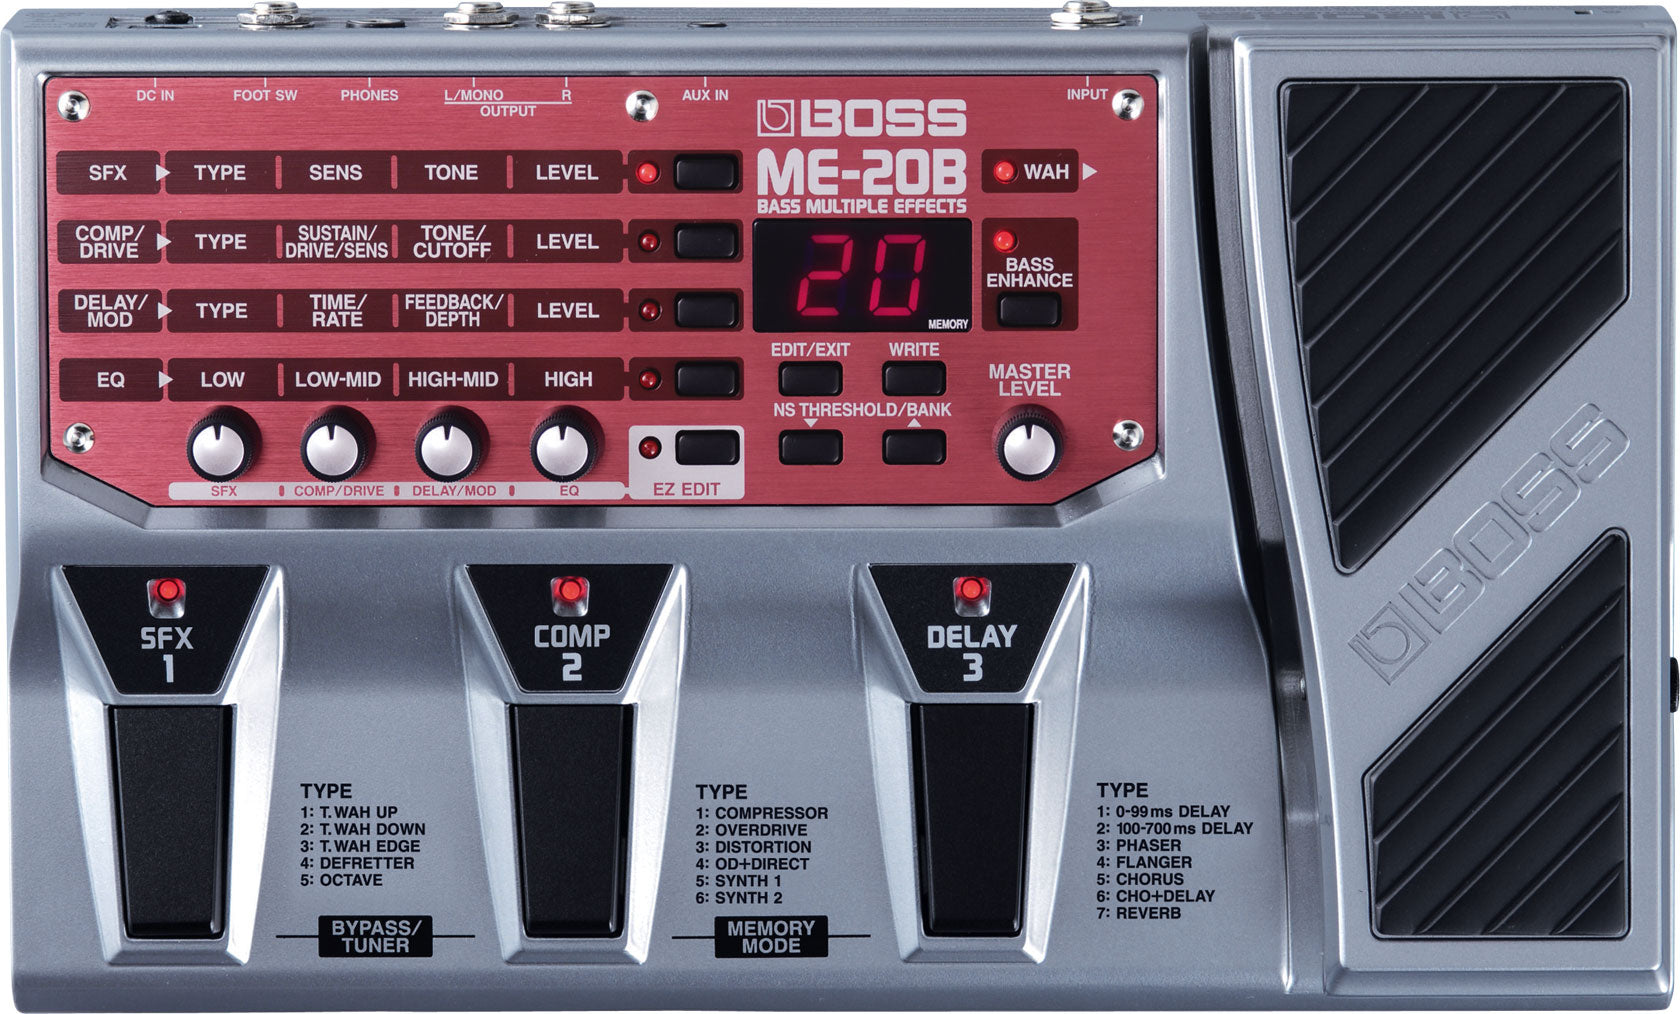 BOSS ME-20B - BASS MULTI EFFECTS PROCESSOR